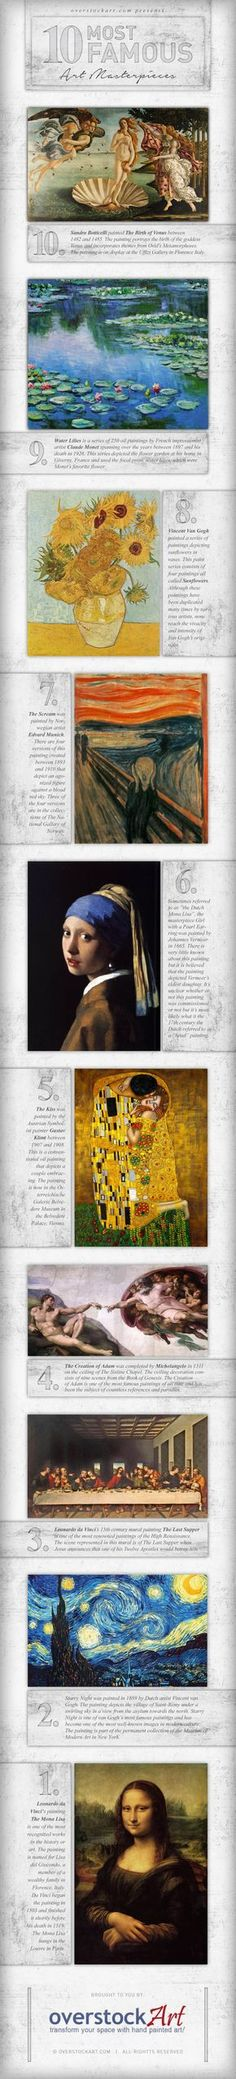 10 Most Famous Art Masterpieces Infographic